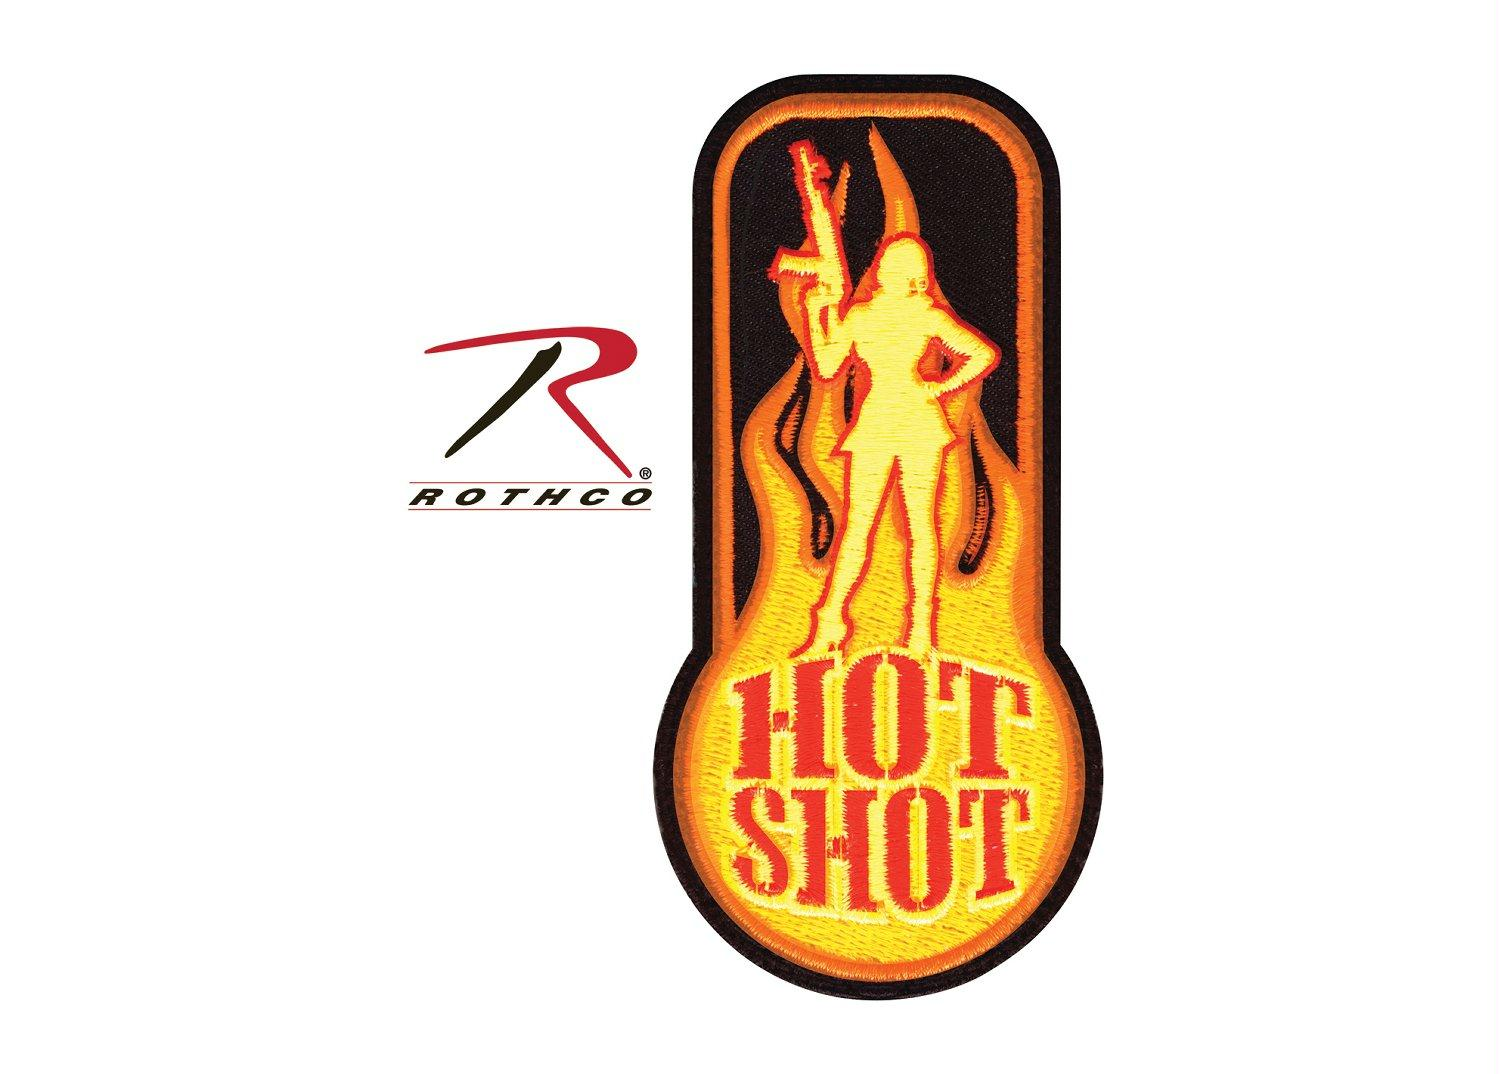 Rothco Hot Shot Morale Patch - Red